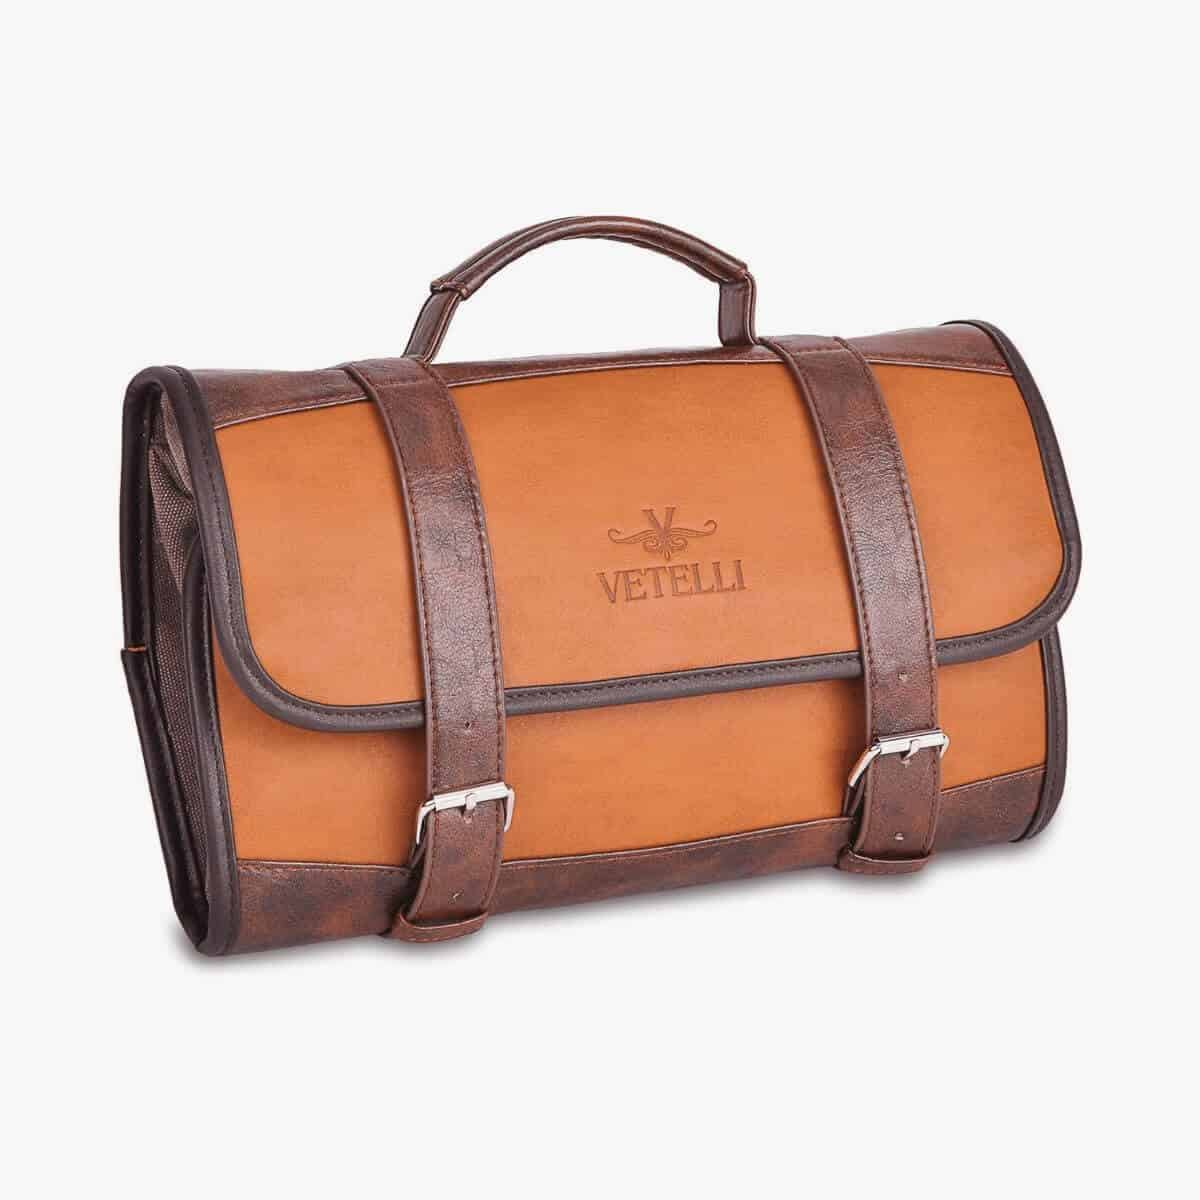 Brown leather hanging toiletry bag with handle.